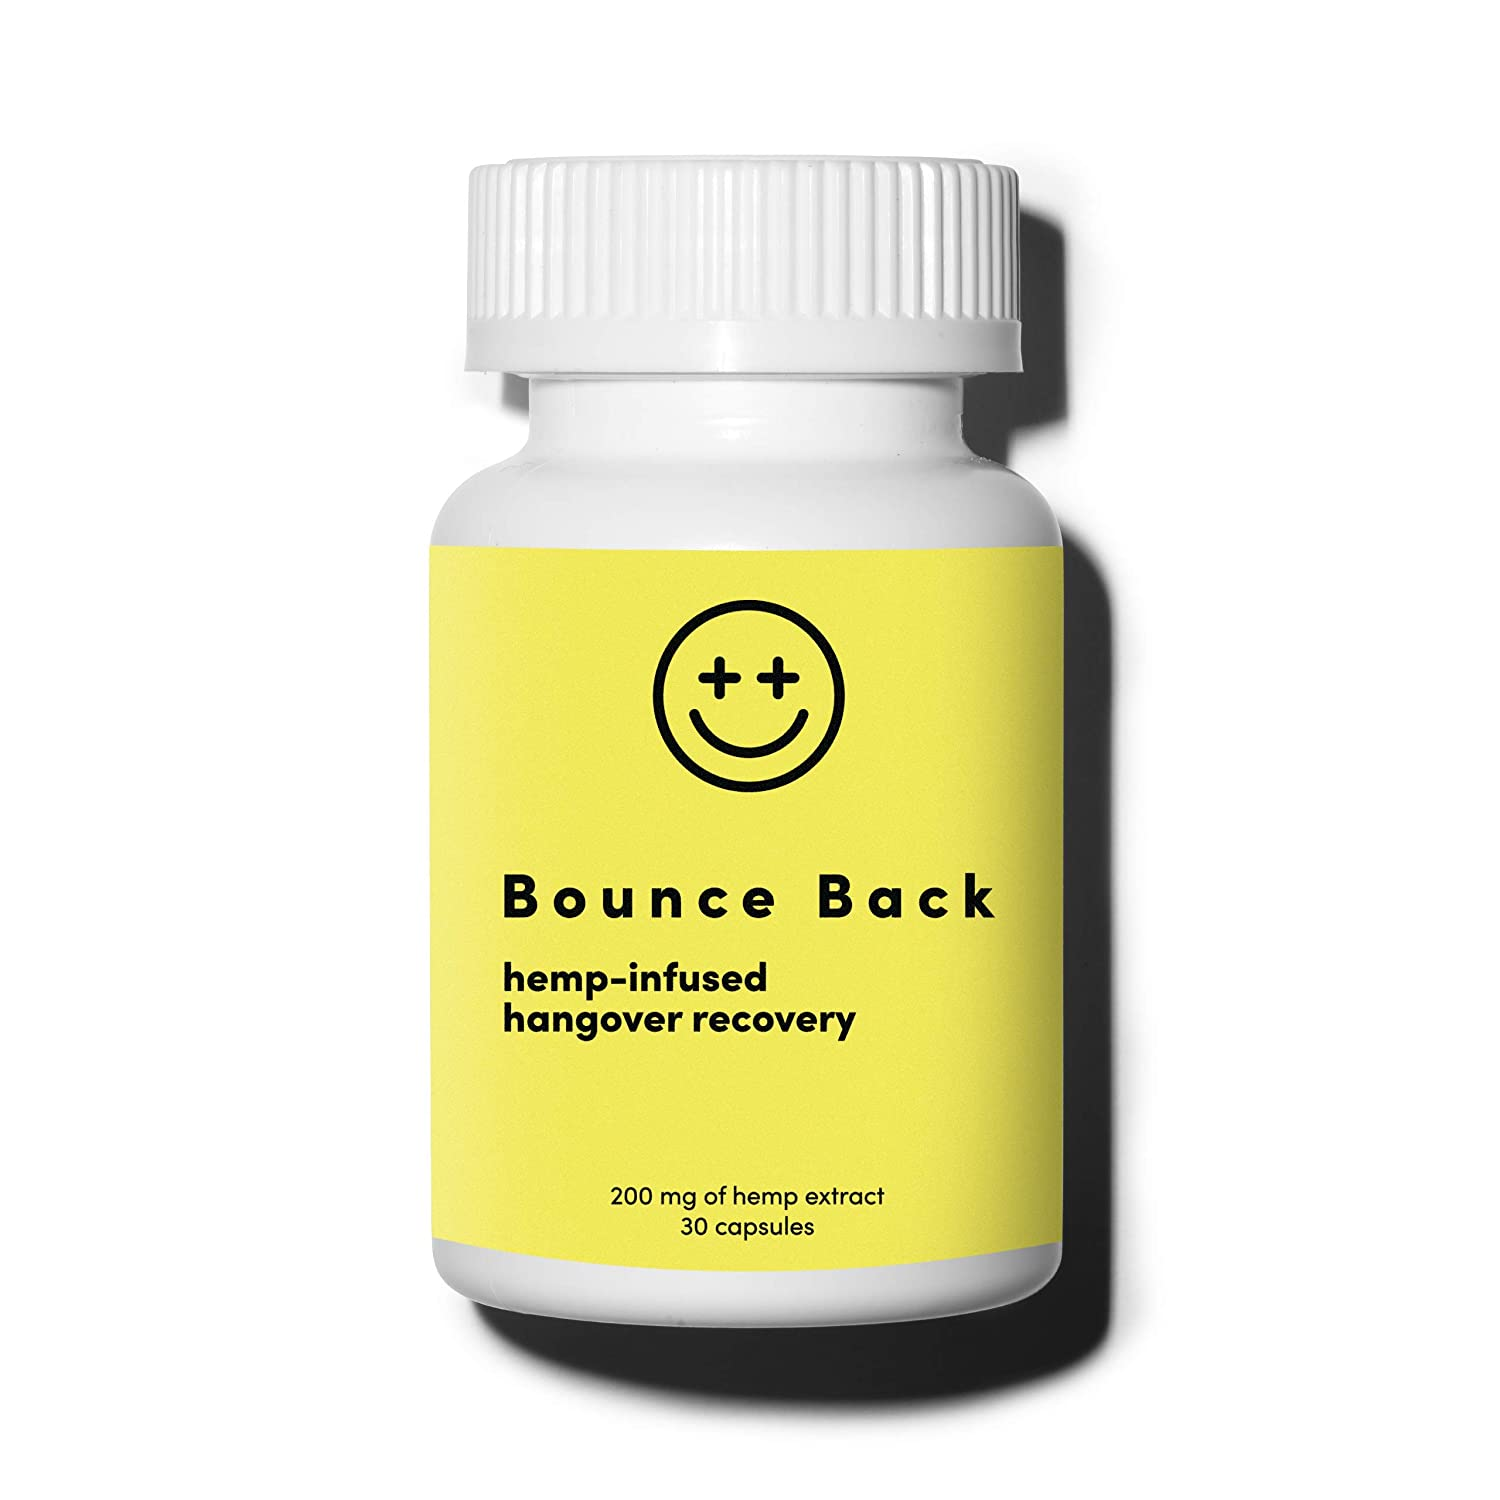 Bounce Back Hangover Cure and Prevention Pills 30 Capsules – After Drink Recovery After Alcohol Relief Aid with Dihydromyricetin DHM , Hemp Extract, Milk Thistle, Prickly Pear Extract, B Vitamins